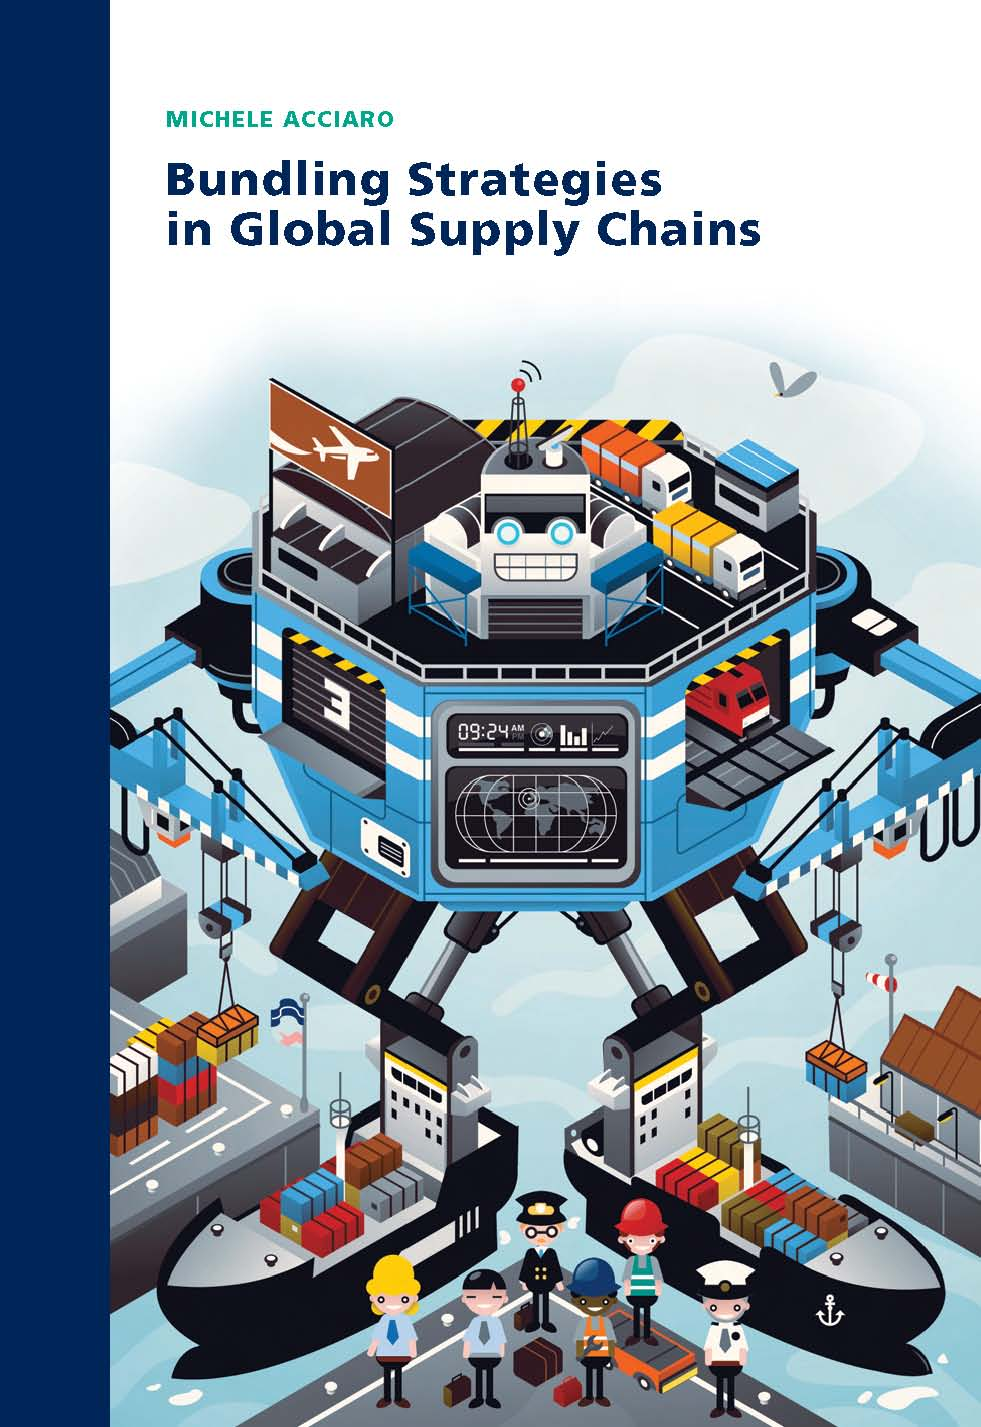 Bundling Strategies in Global Supply Chains